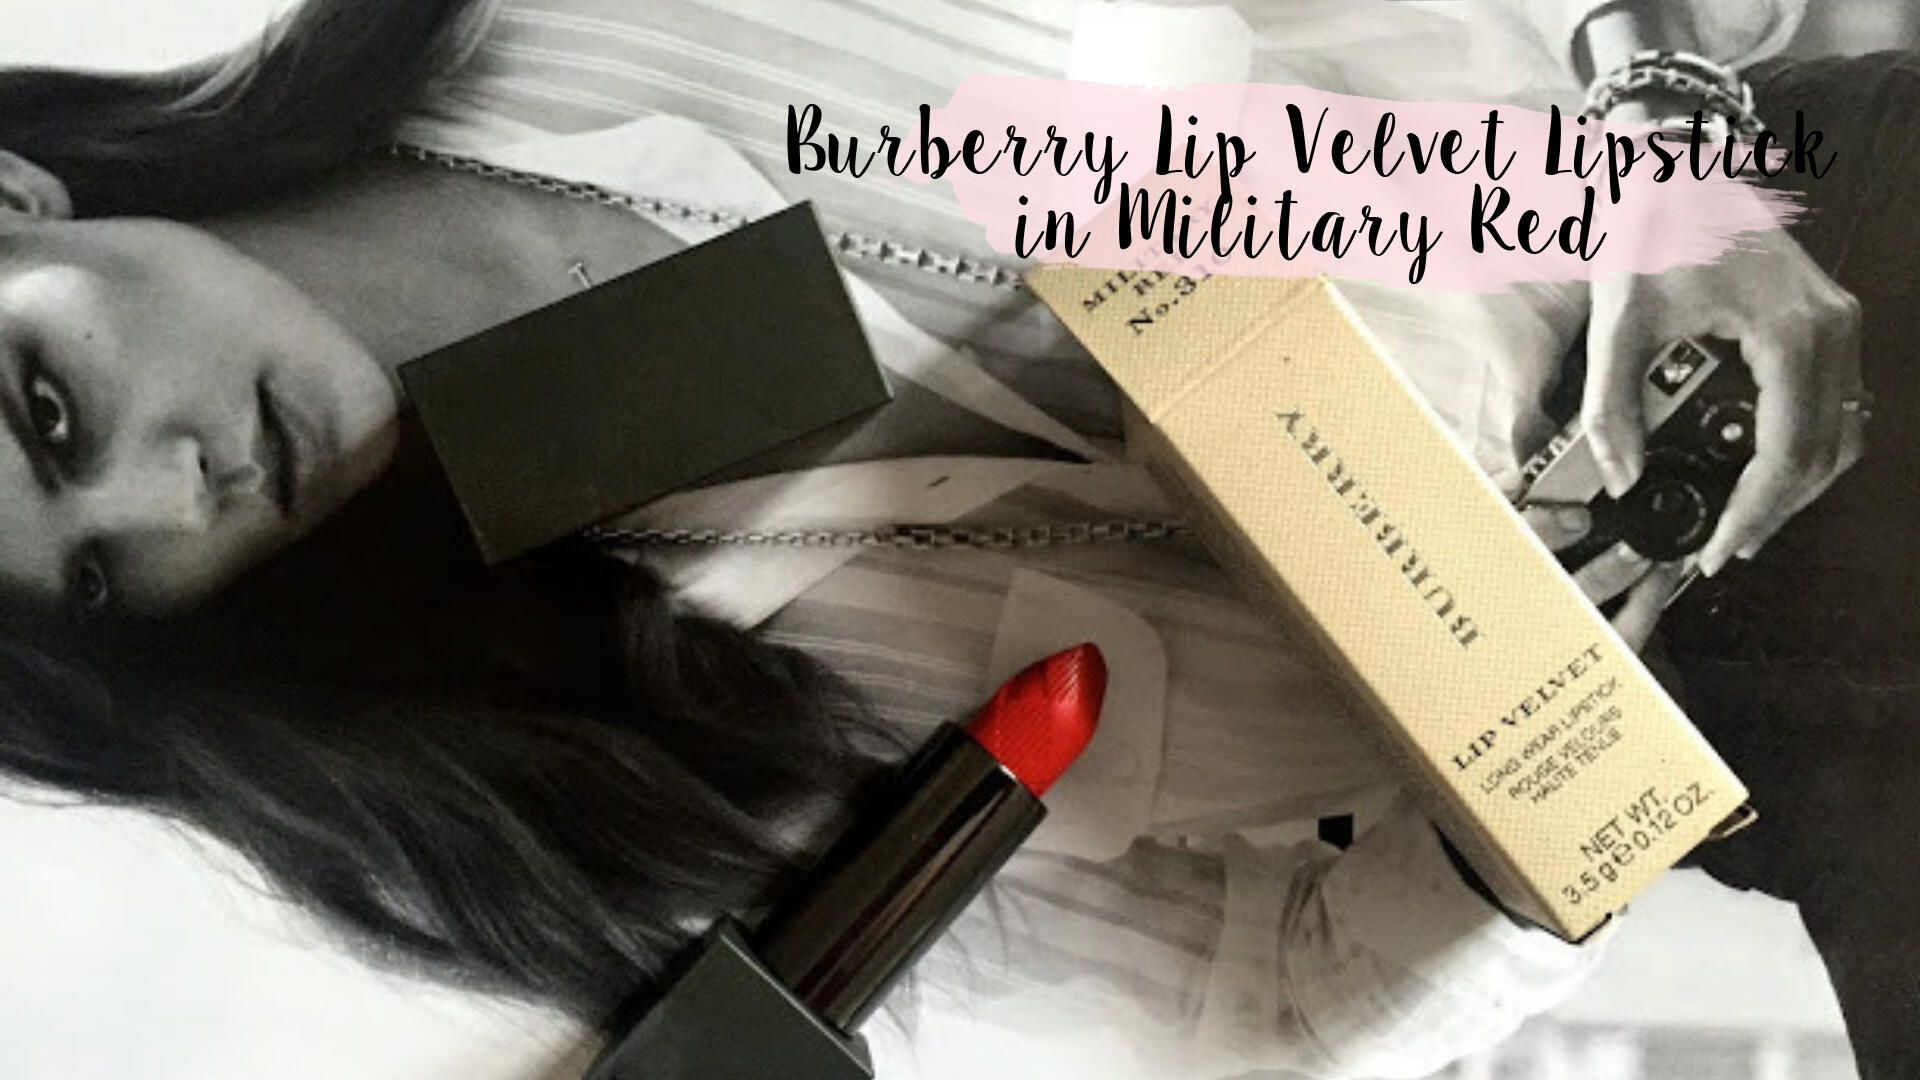 Burberry Lip Velvet Lipstick in Military Red || Beauty